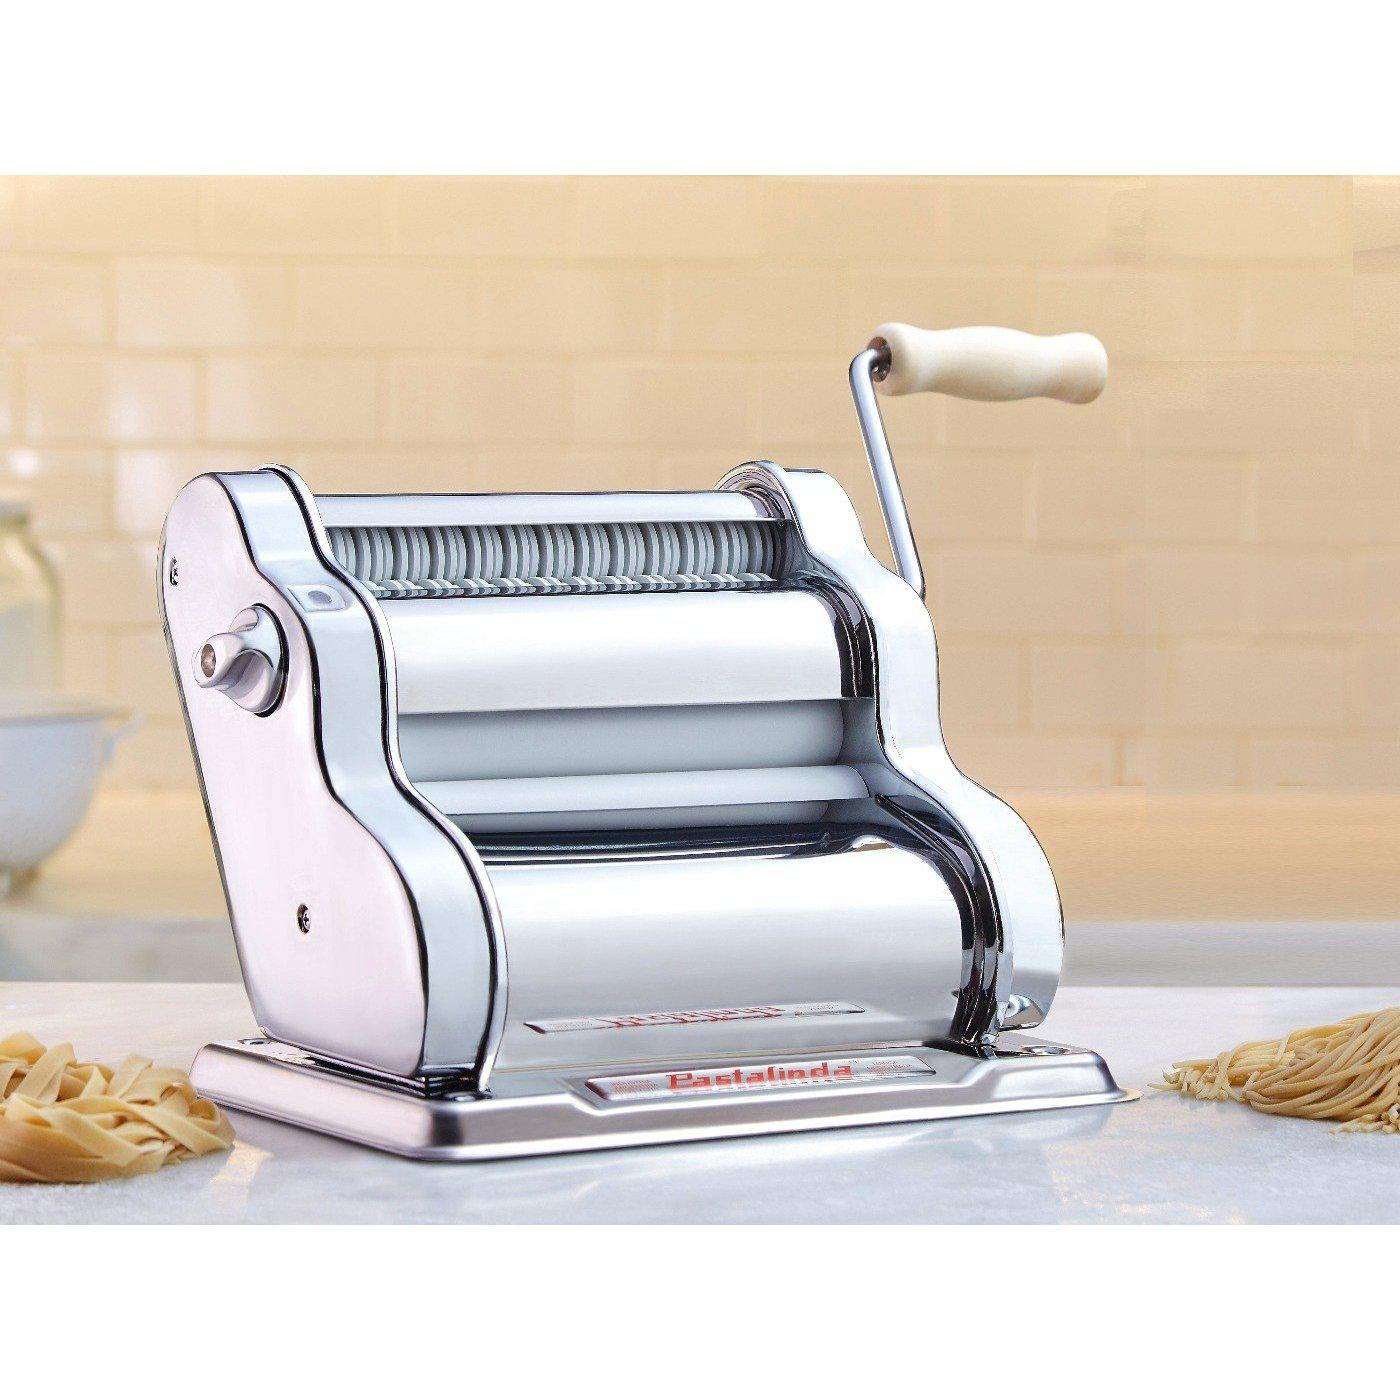 Pastalinda Chrome Pasta Maker